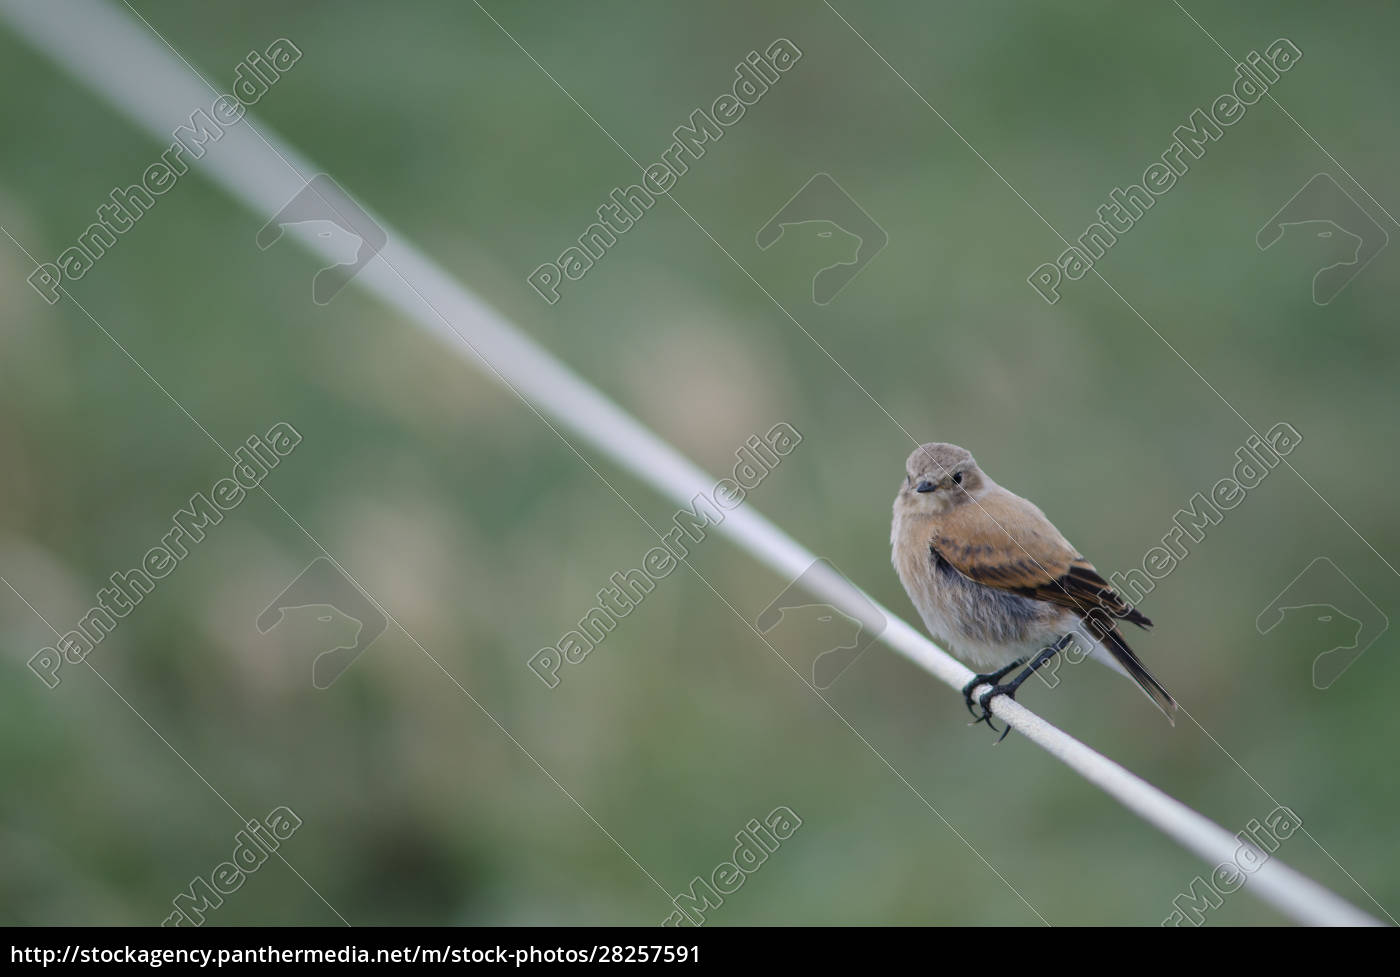 bird, perched, on, rope, in, the - 28257591